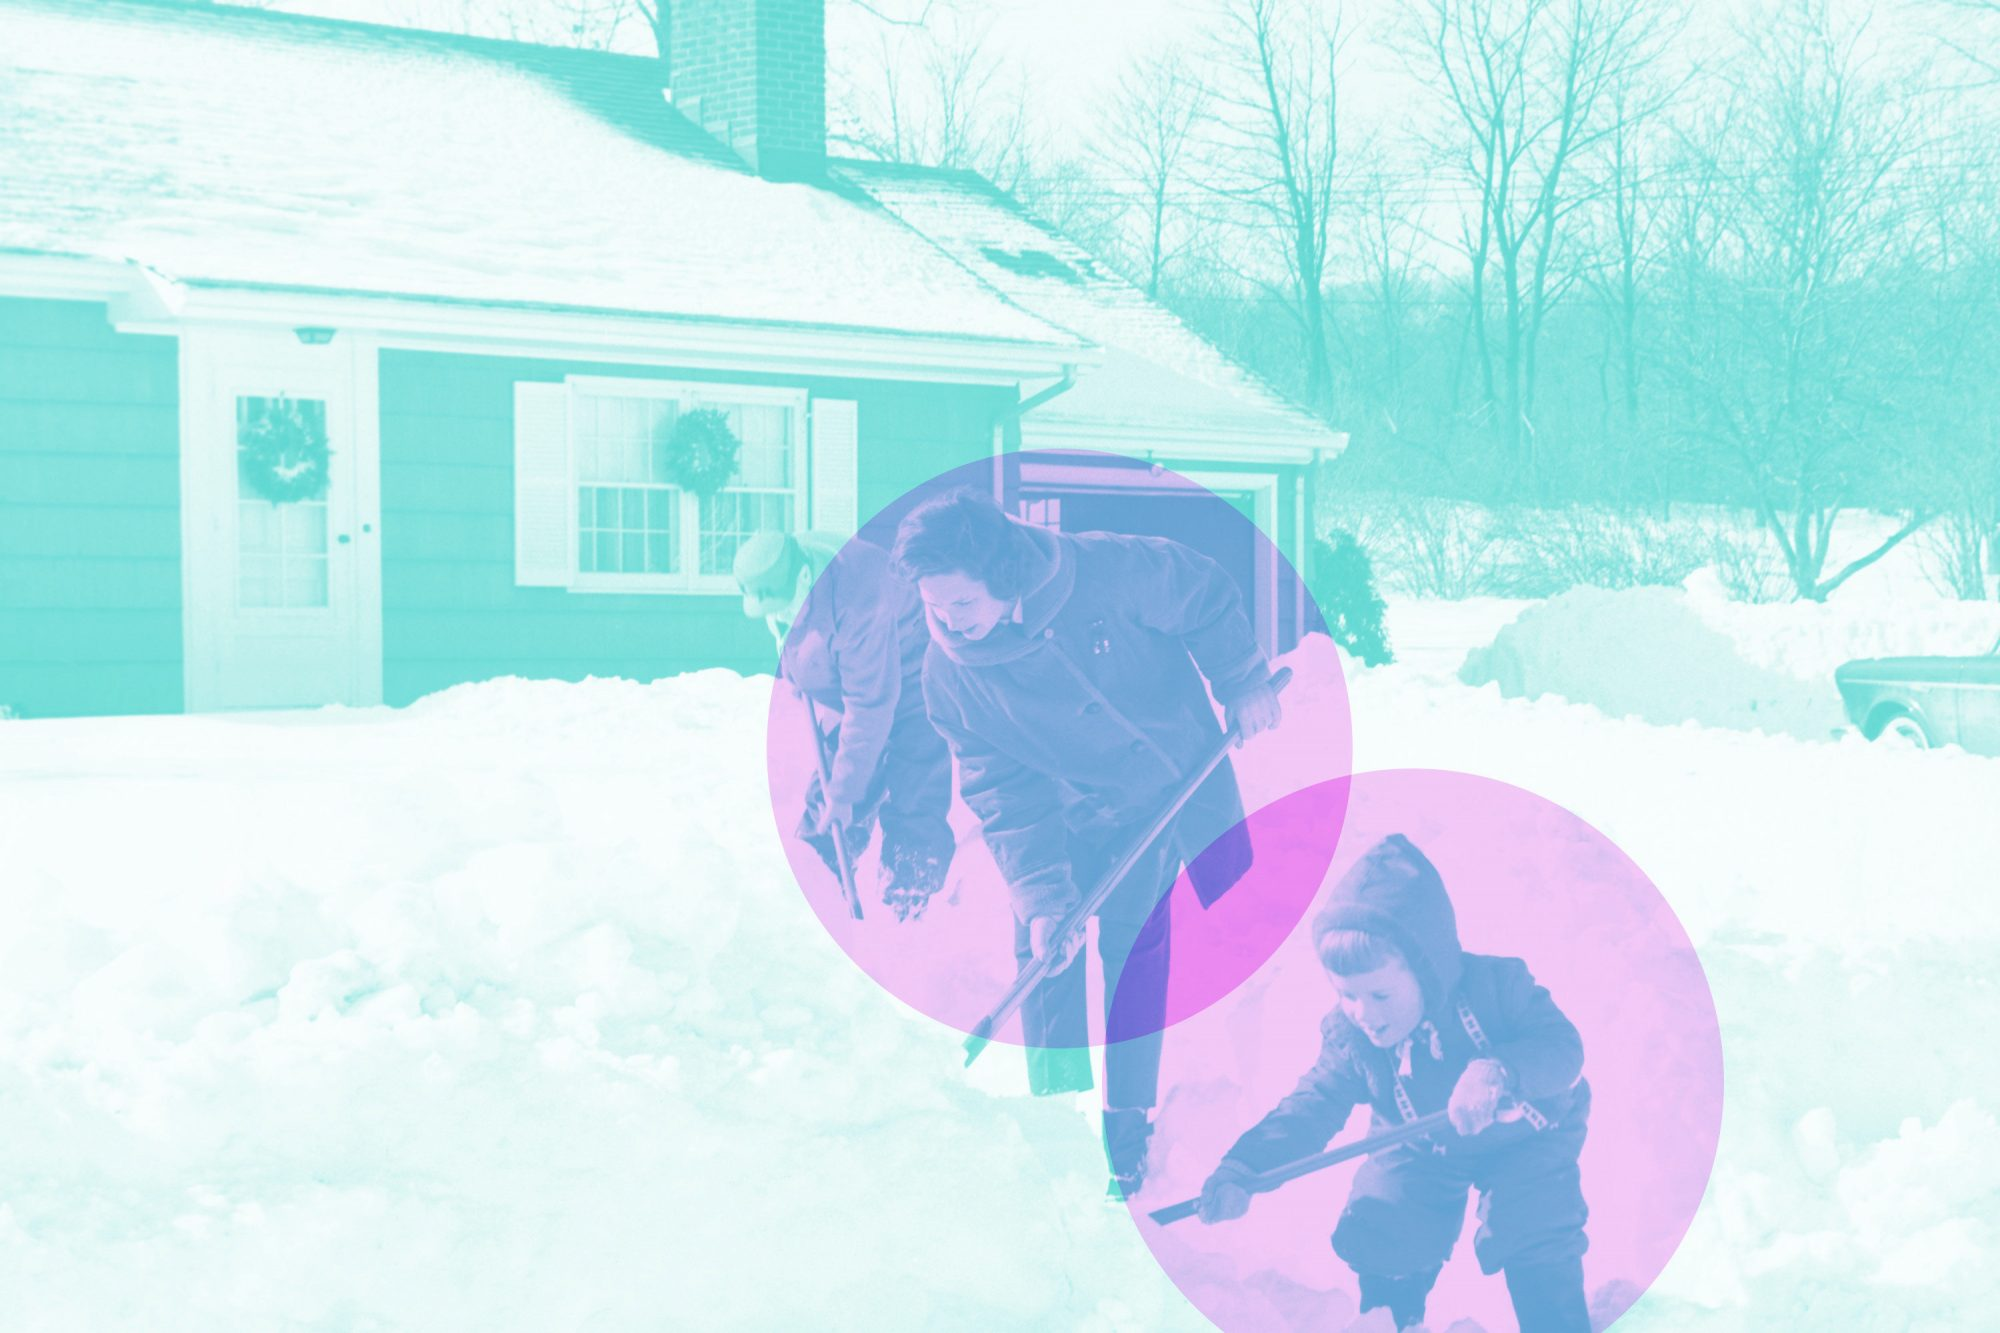 Why Snowstorms Are Bad for Your Heart